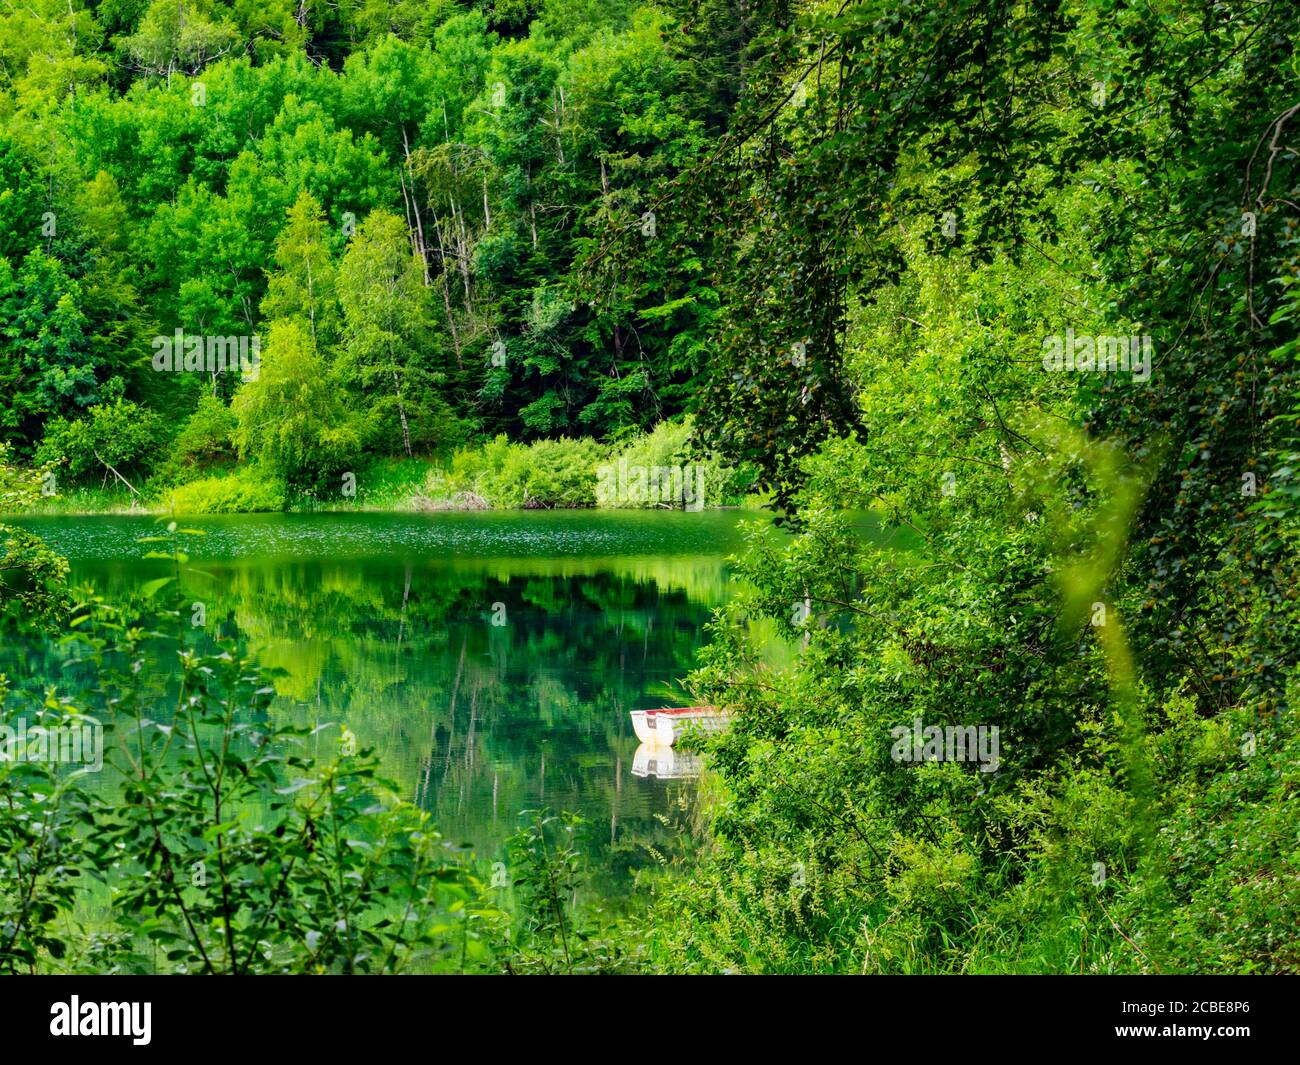 Lonely alone one boat coastline Green forest pretty beautiful preserved nature natural environment Spring season lake Mrzla vodica in Croatia Europe Stock Photo